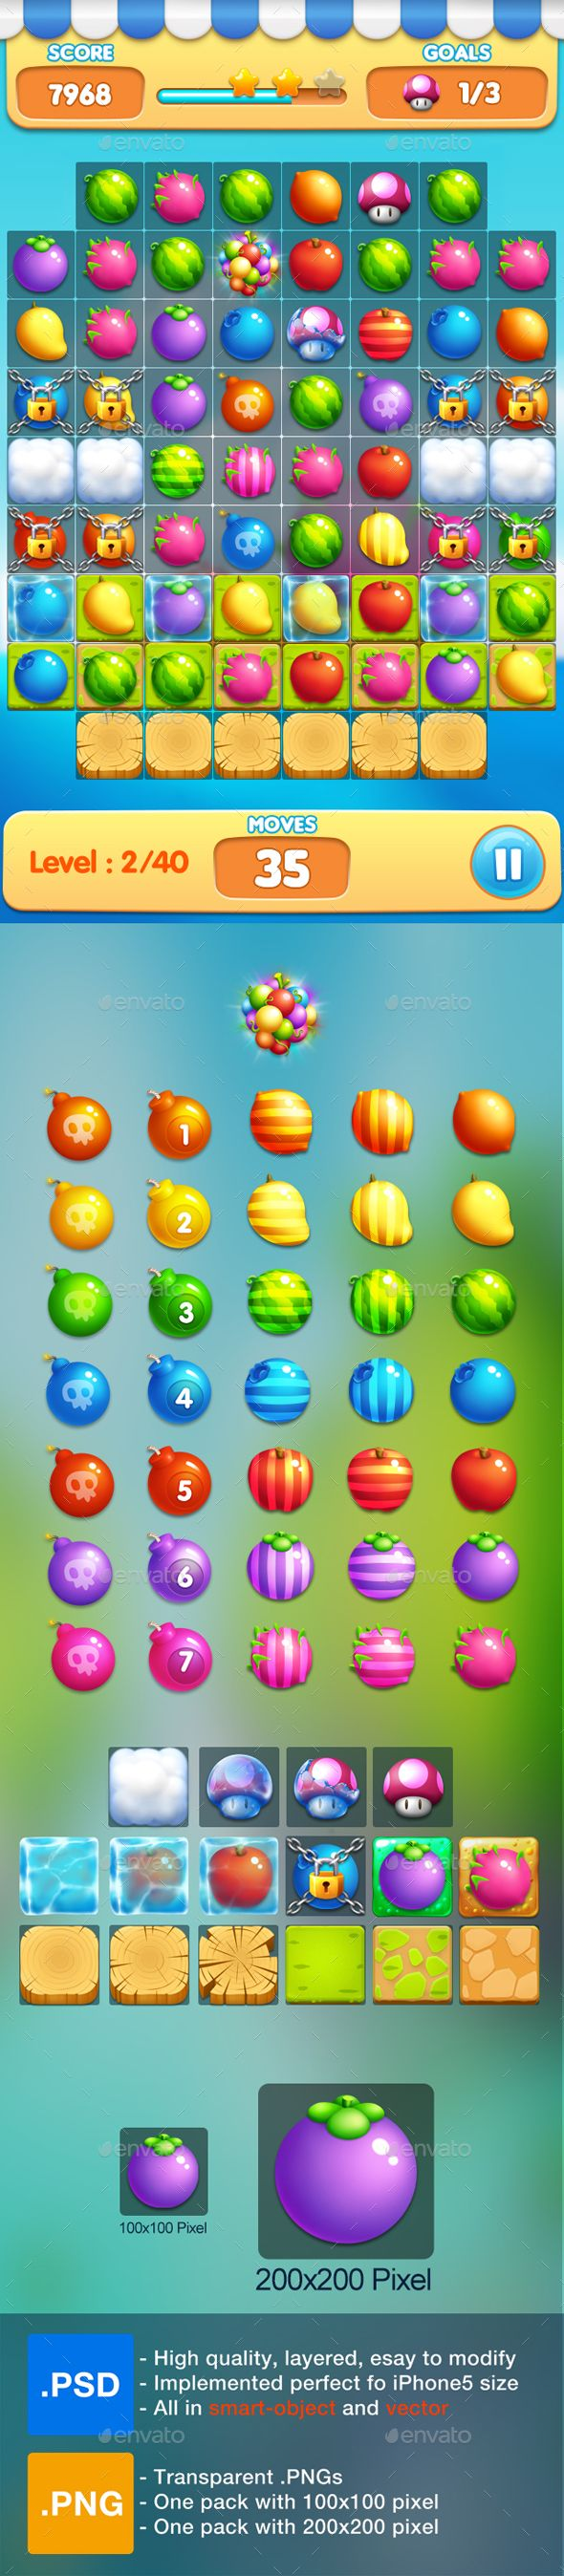 Fruits - Match 3 Game Assets.  	2d, cute, design, farm, fruits, game, game assets, game gui, game kits, garden, items, lock, match 3, mobile, mobile game, object, sweet